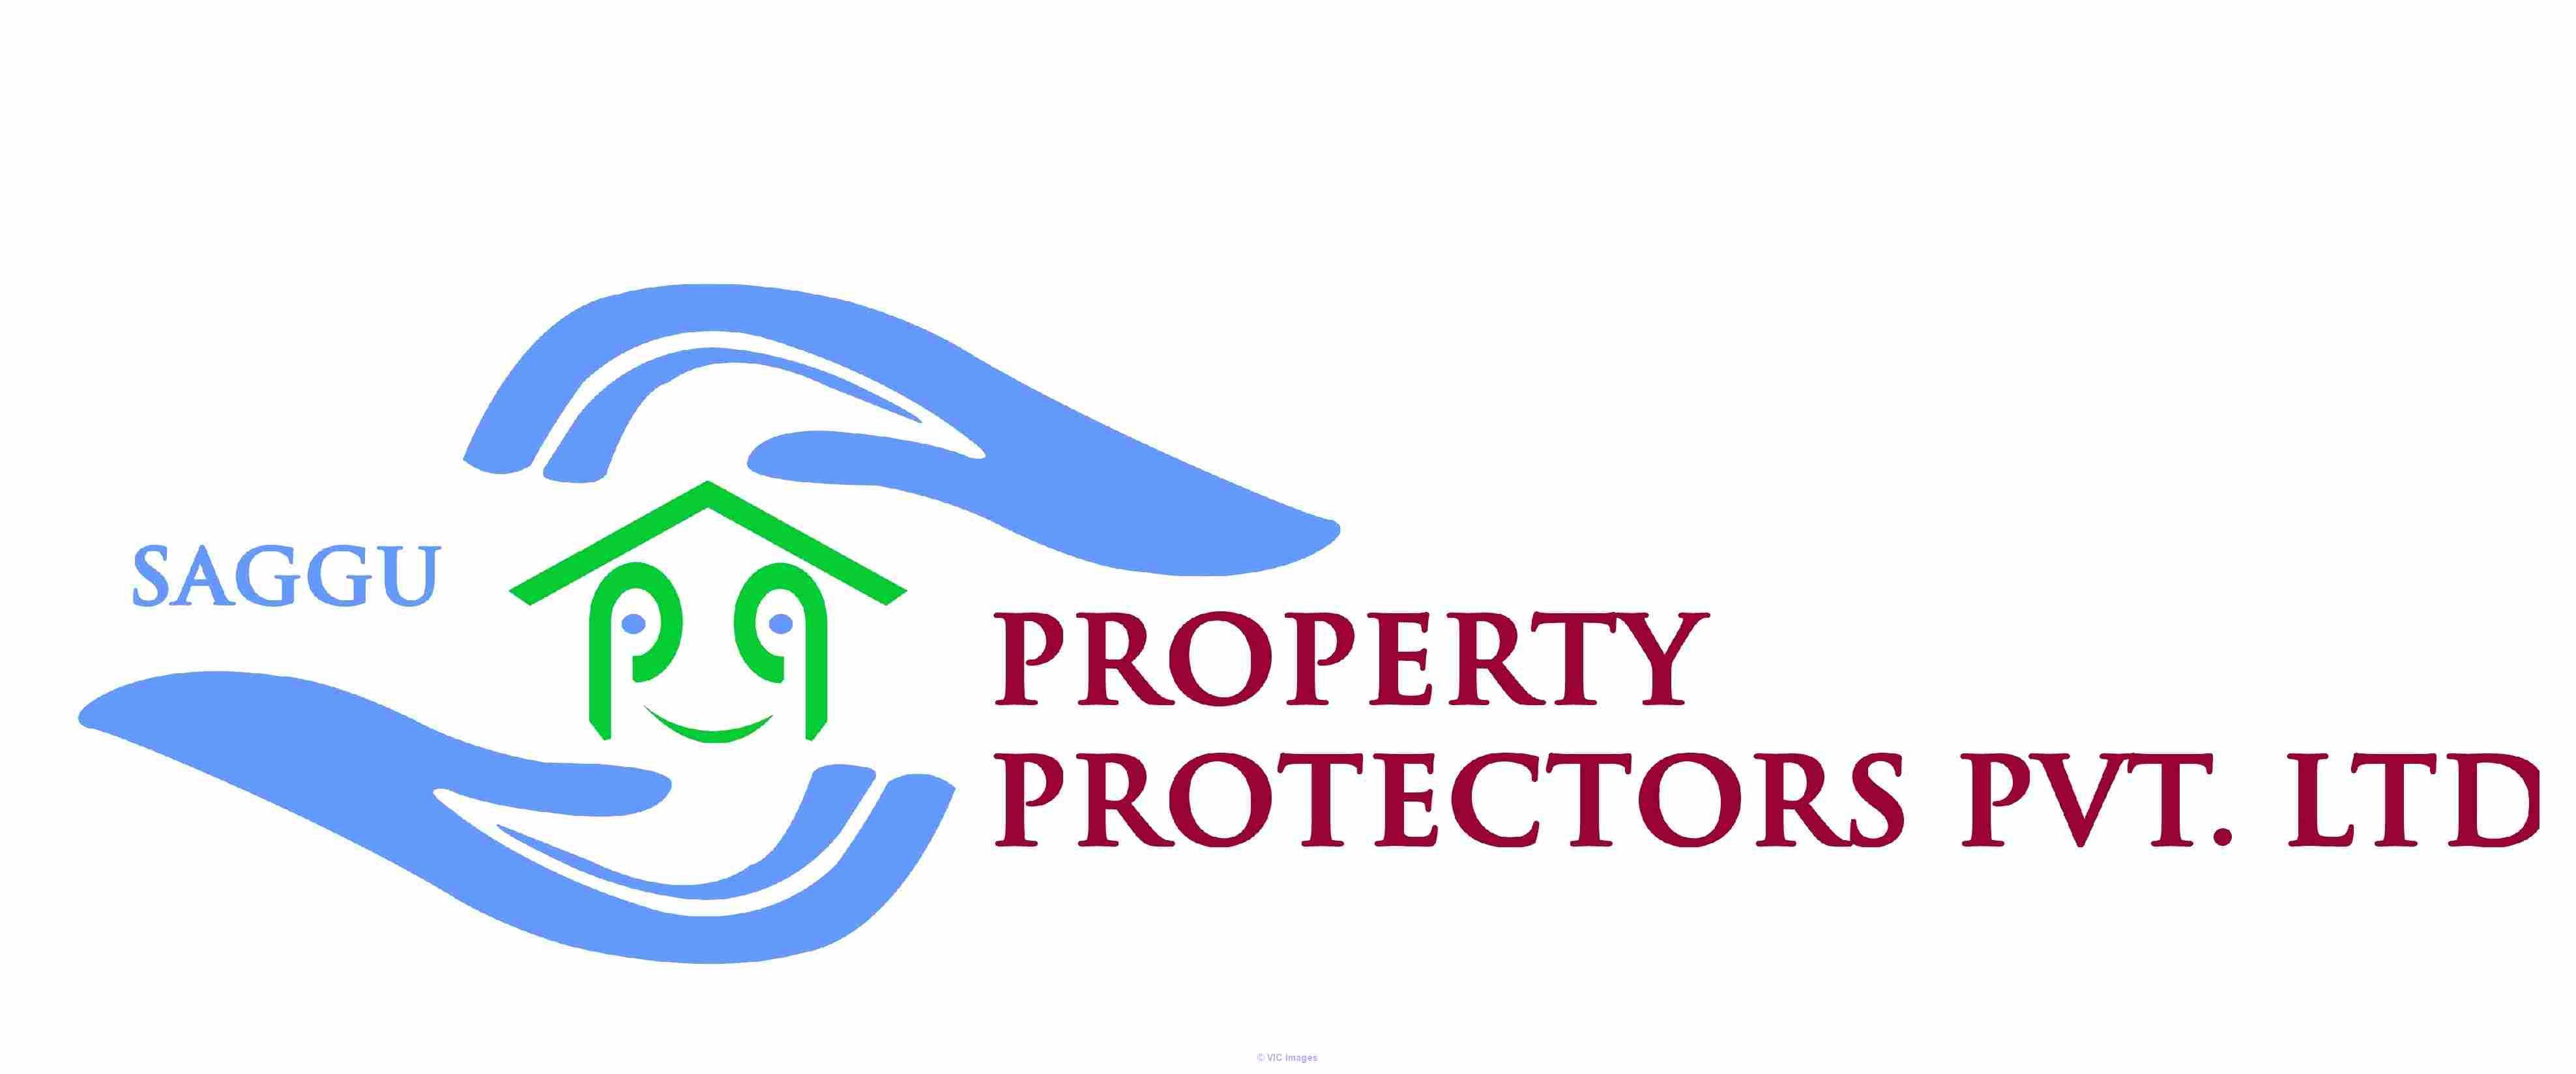 Saggu Property Protectors Private Limited Kimberley, South Africa Classifieds